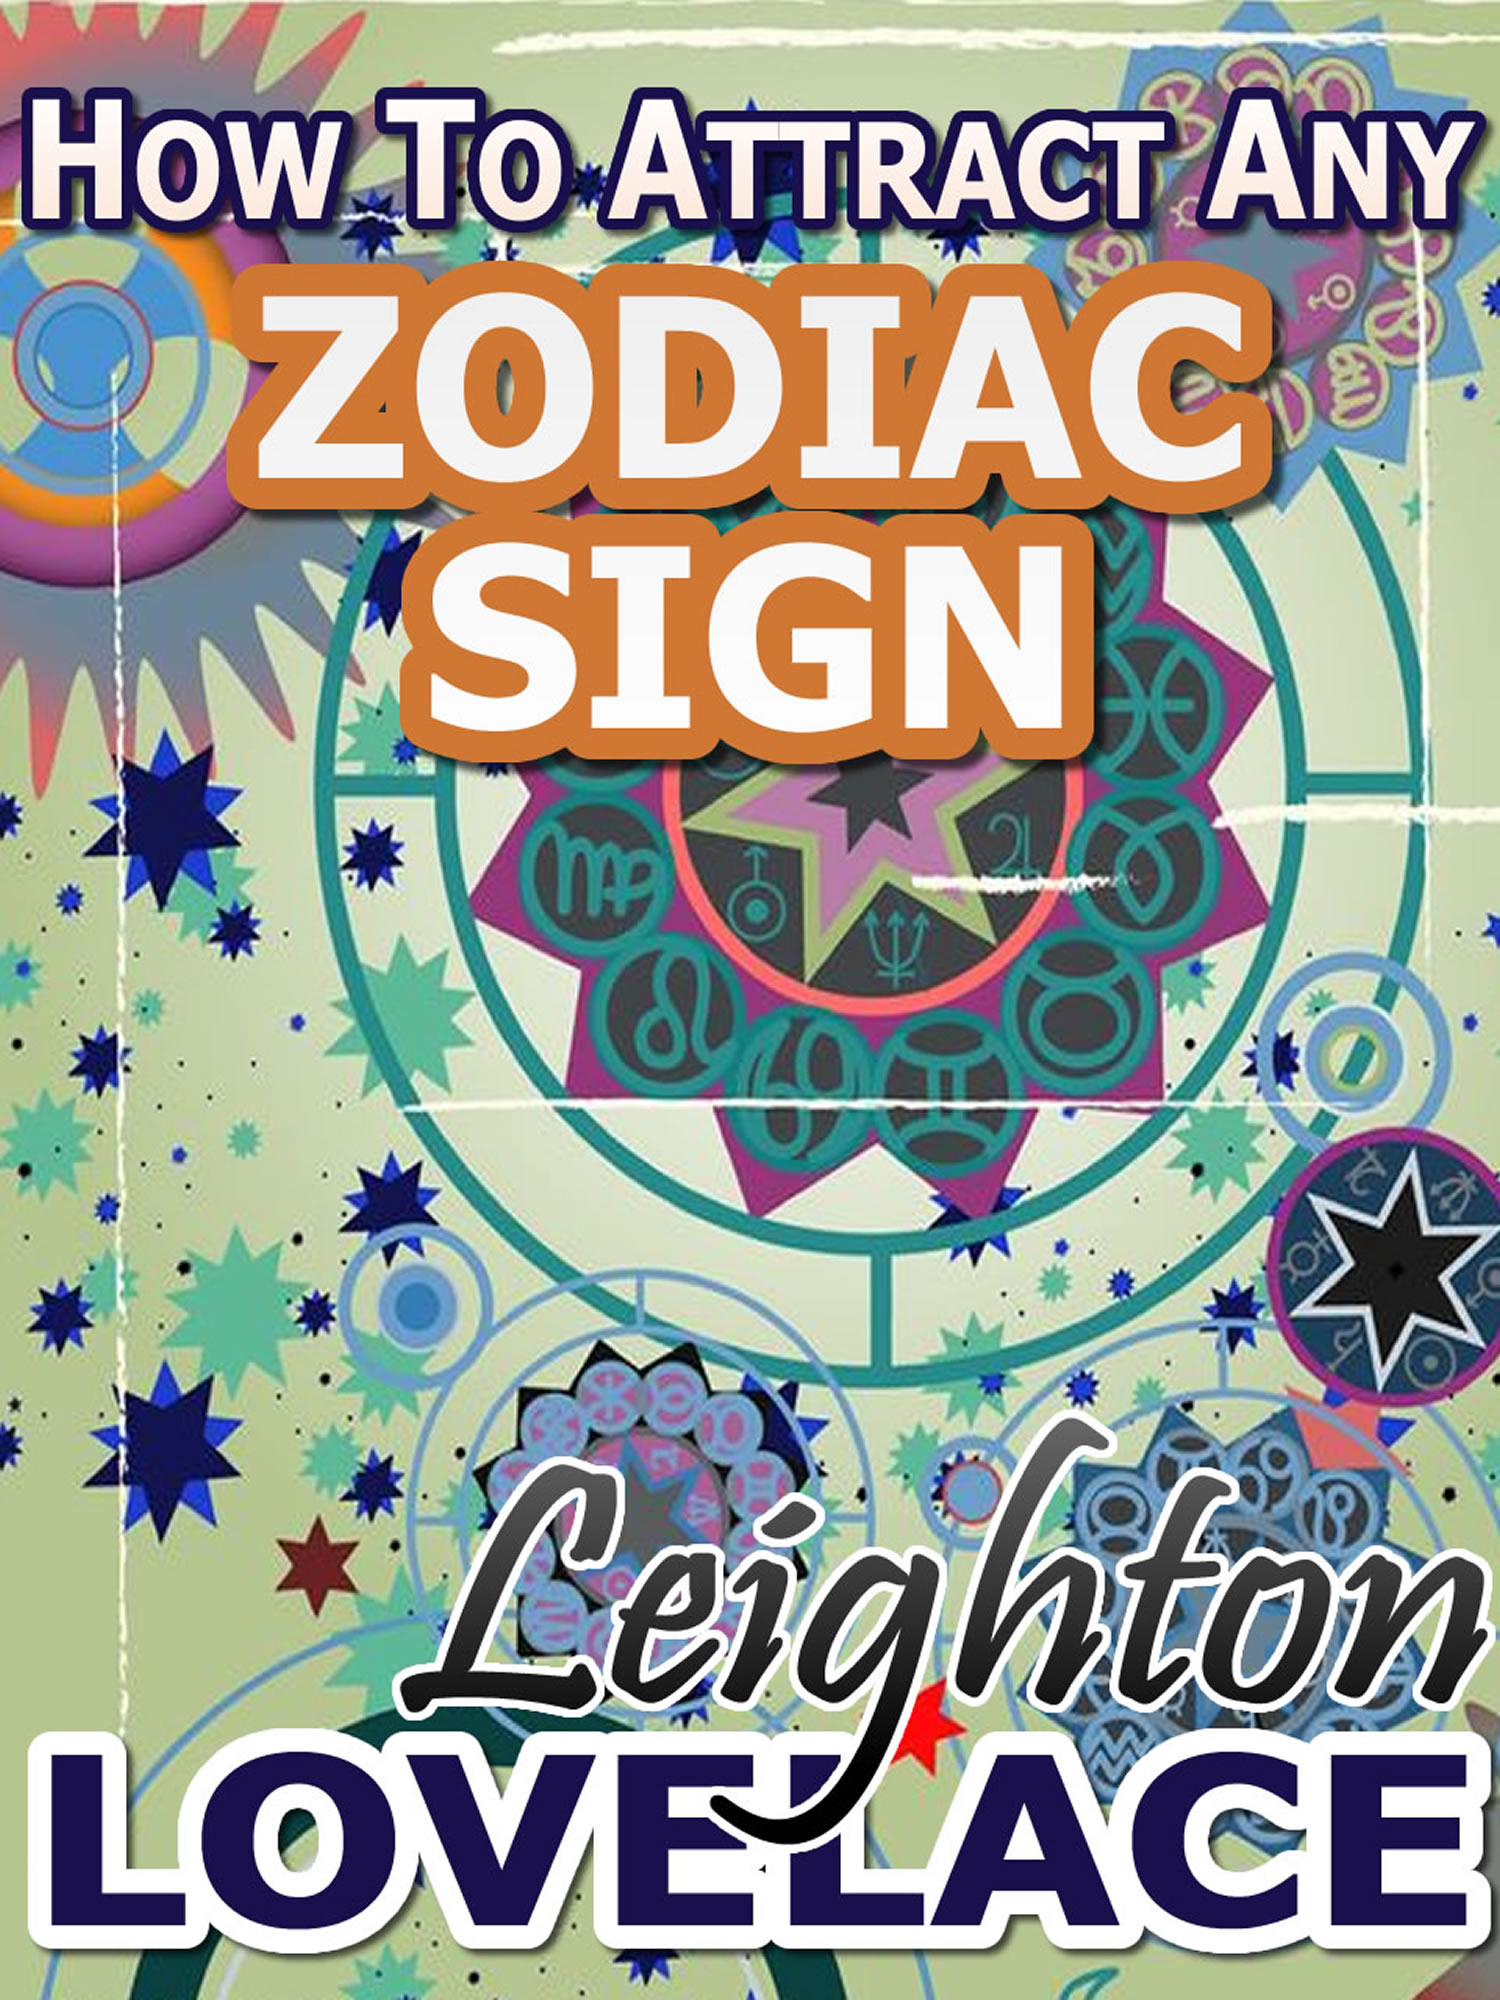 How To Attract Any Zodiac Sign - The Astrology for Lovers Guide to Understanding Horoscope Compatibility for All Zodiac Signs and Much More